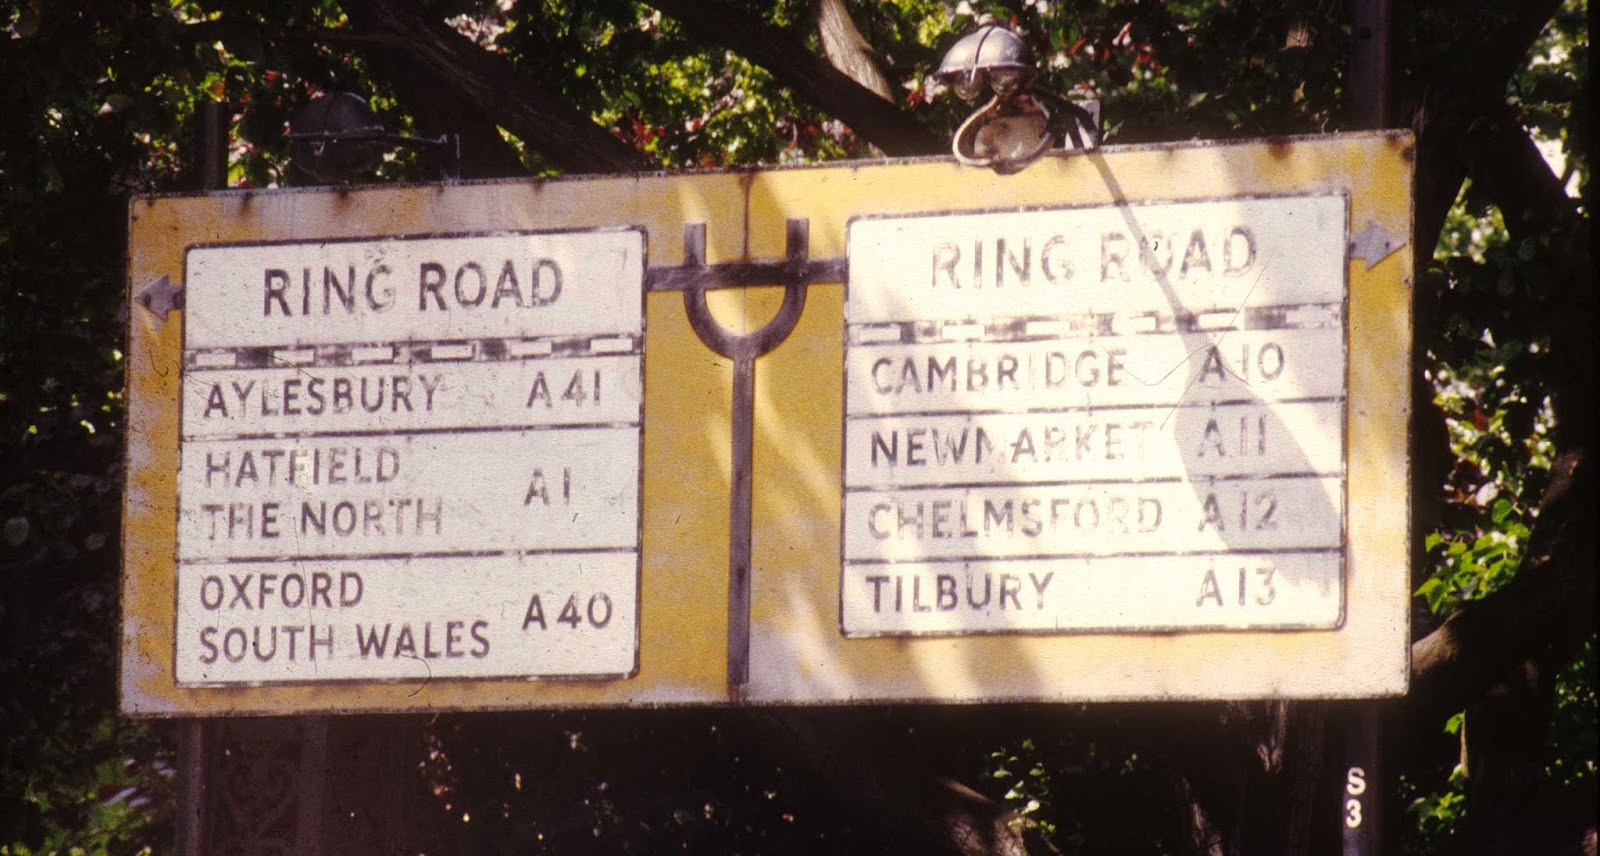 Hatfield and the North bandnaam uitleg - Signpost